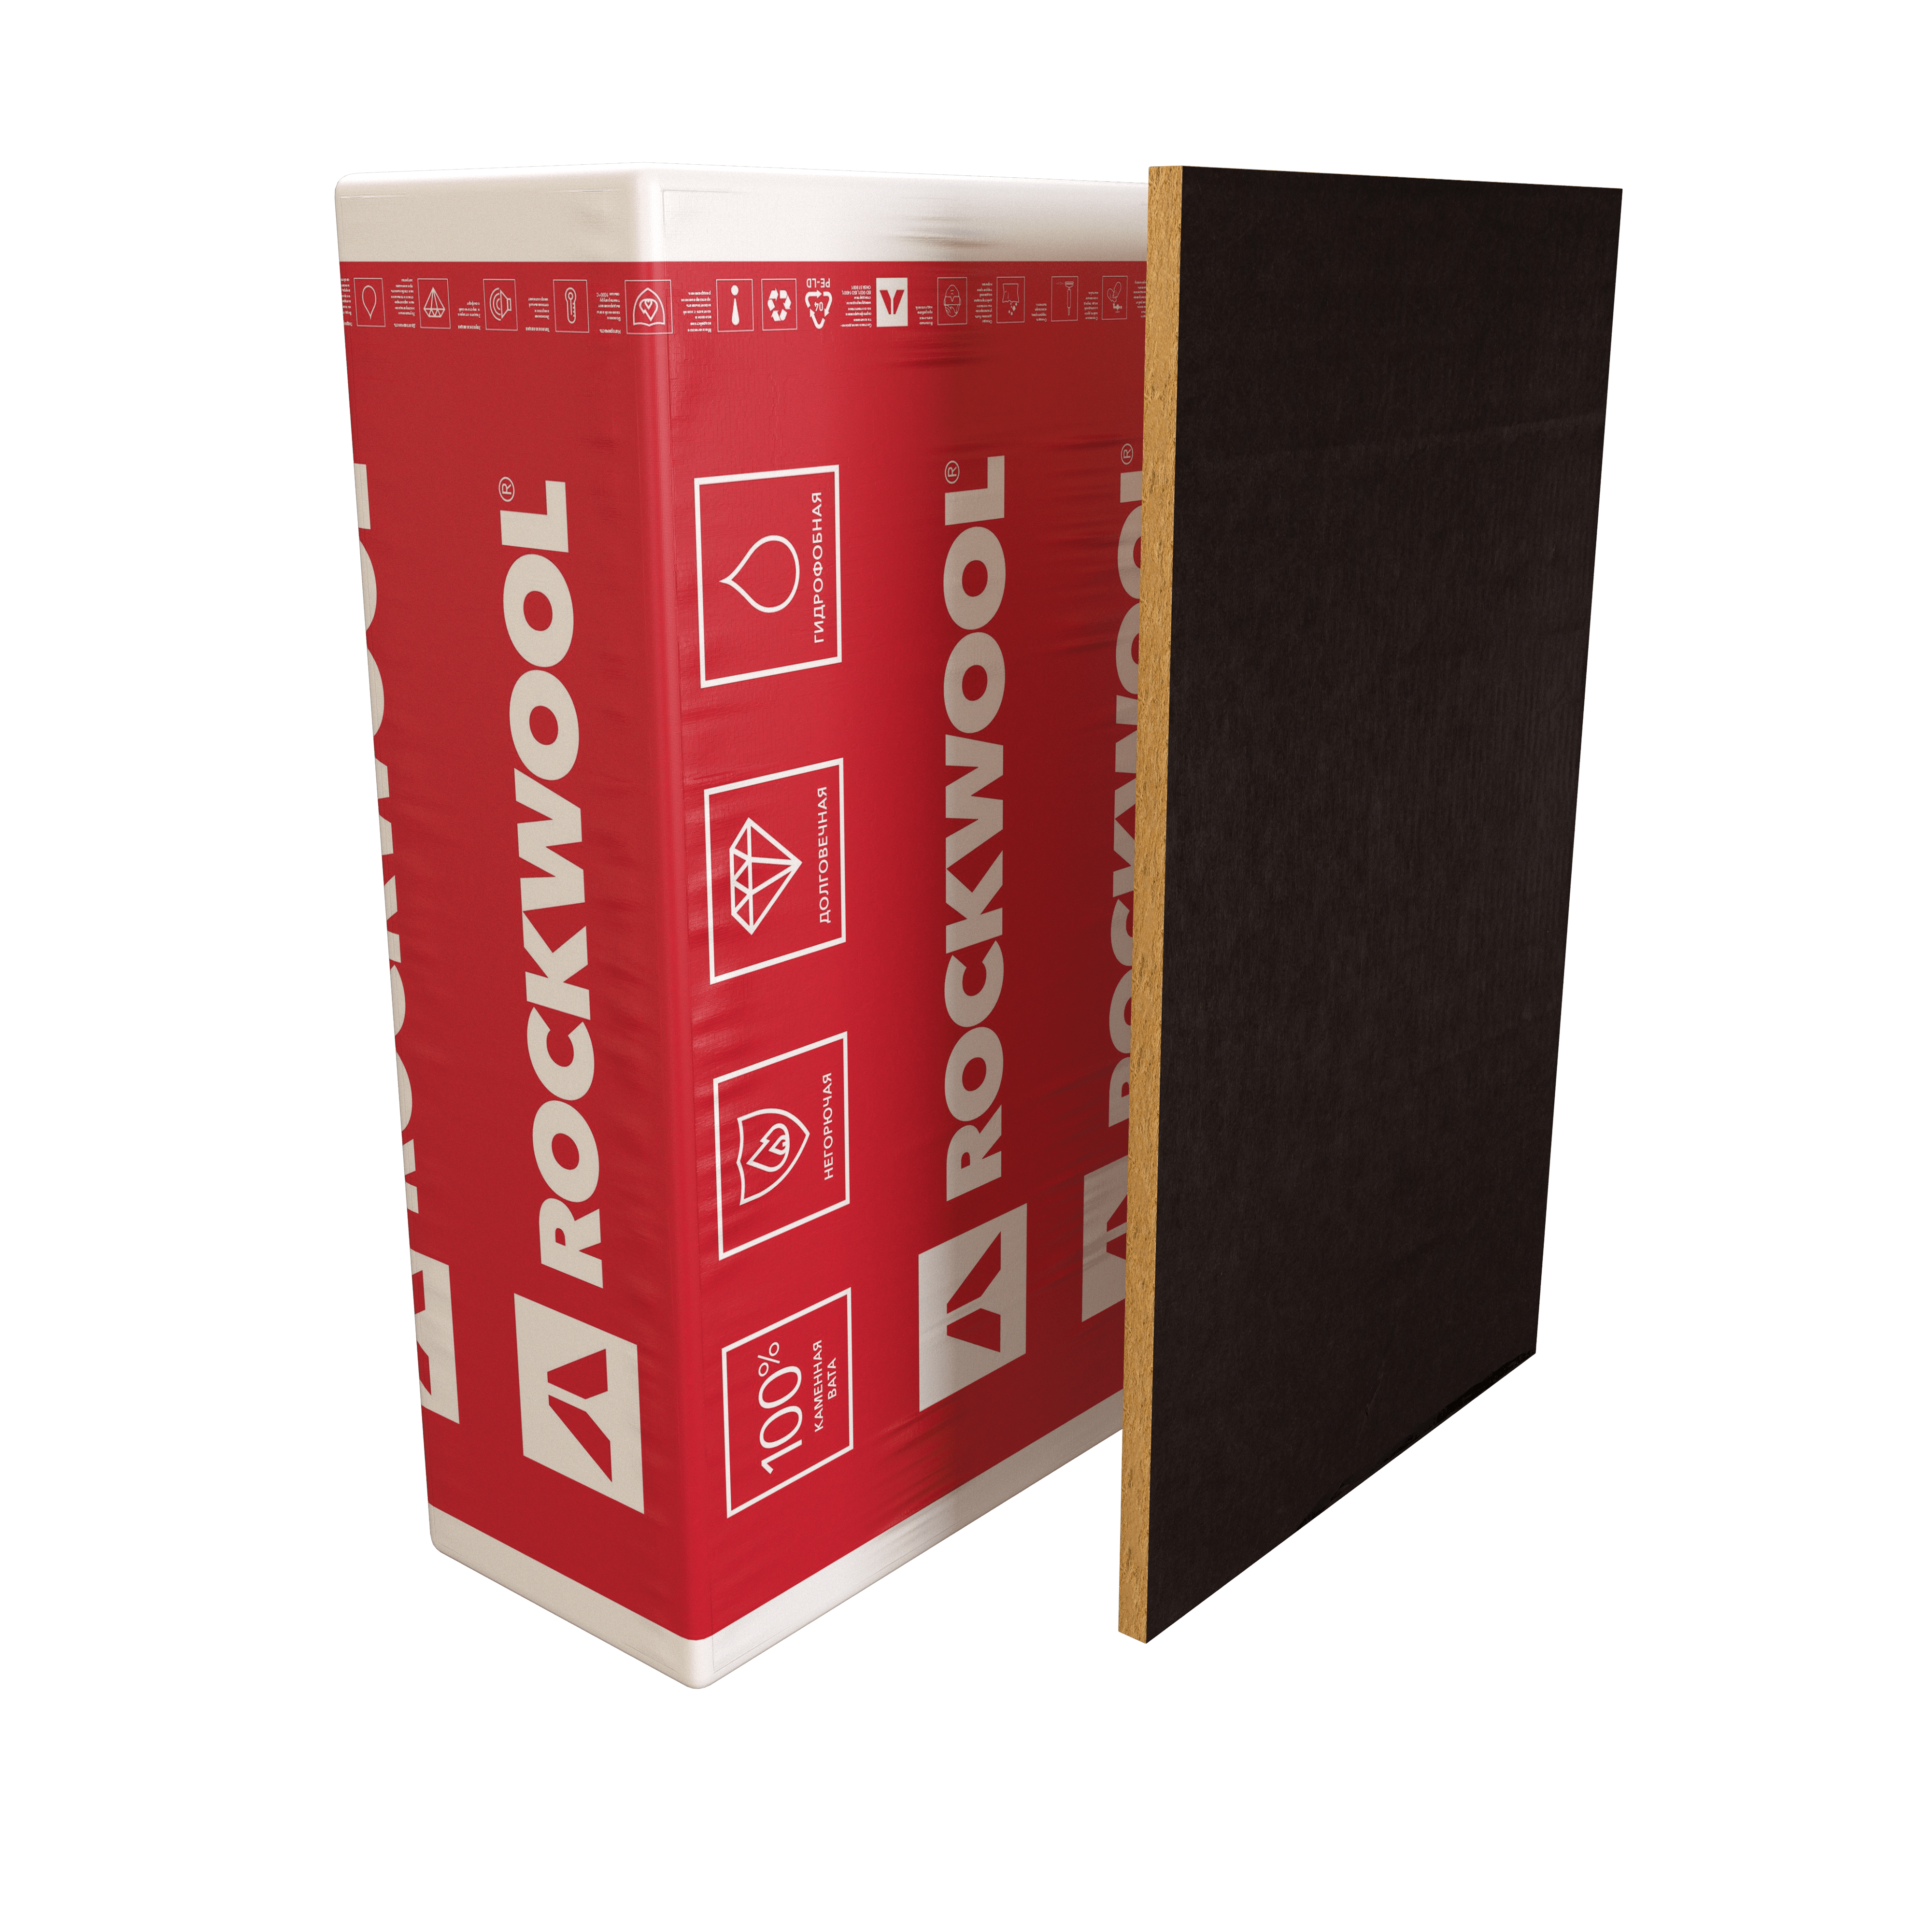 Package, Product, Iti, technical Insulation, Acoustics, Industrial batts 80